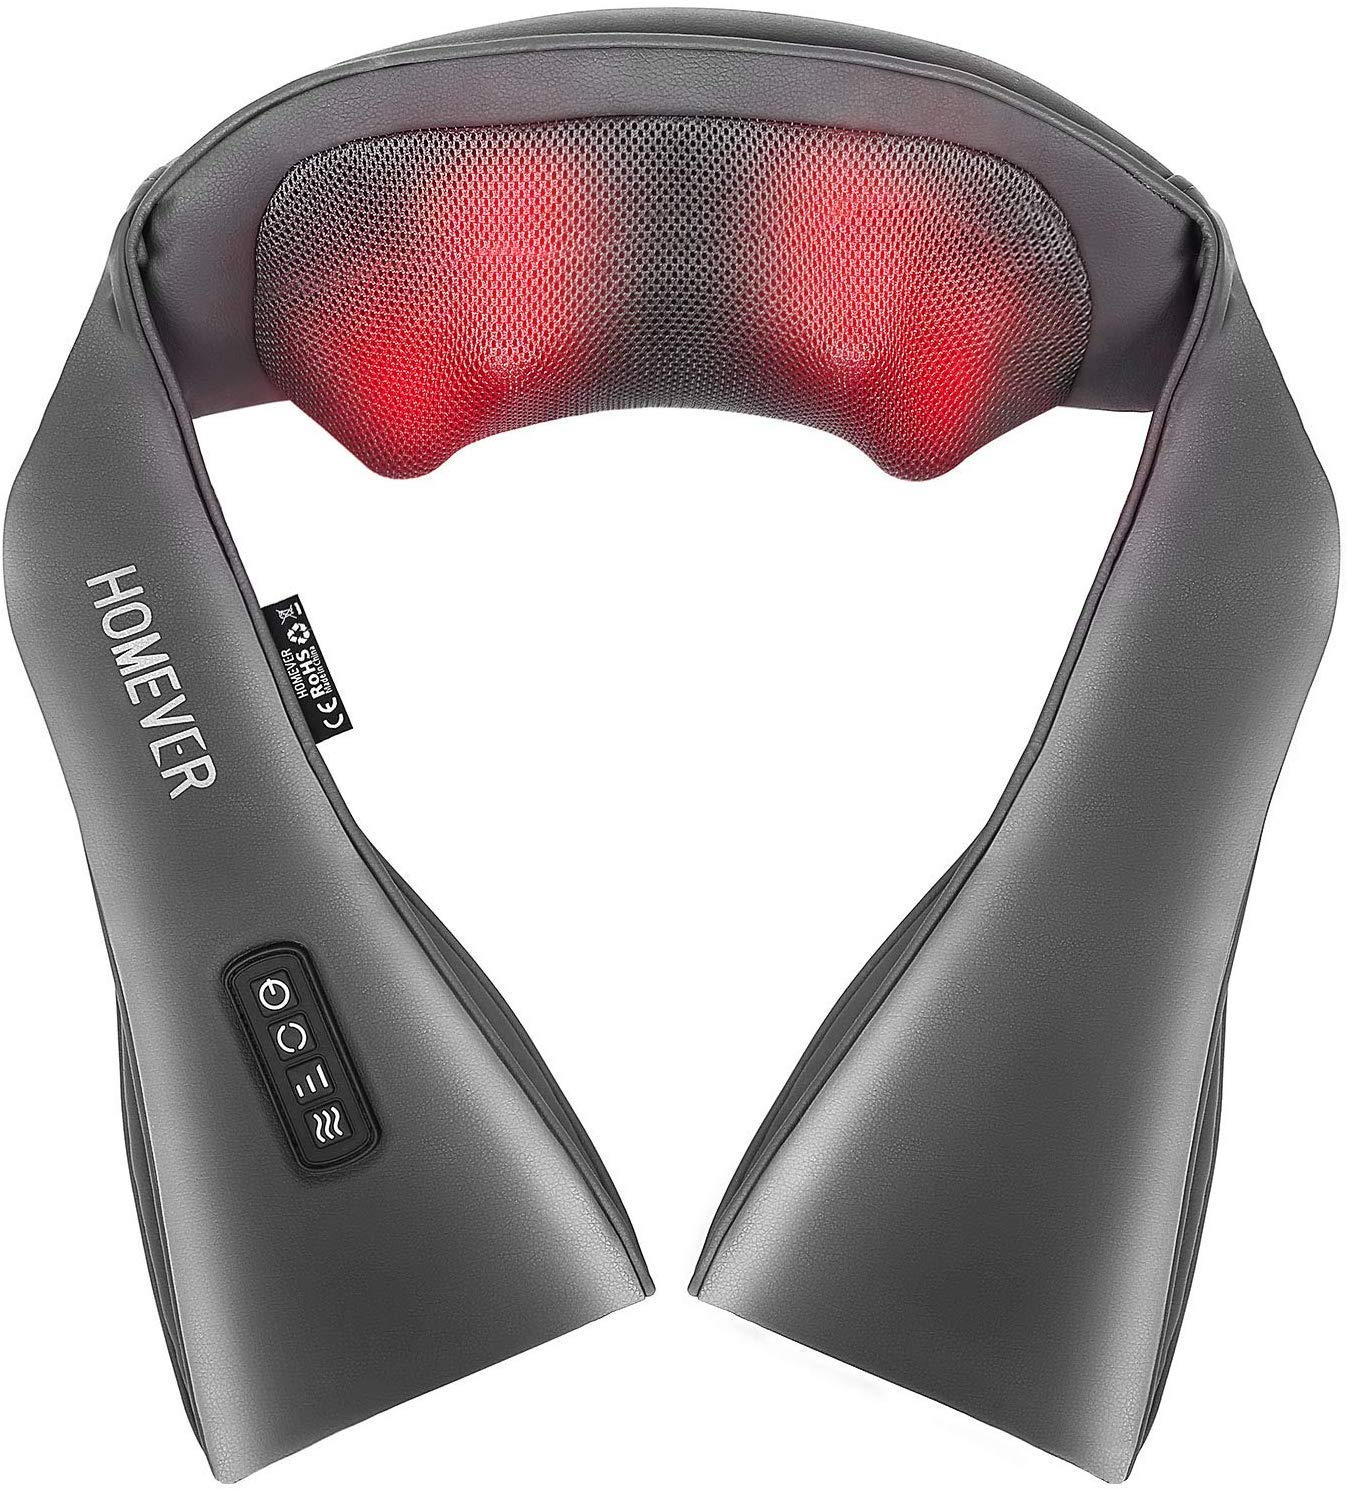 Homever Shiatsu Back Shoulder Massager